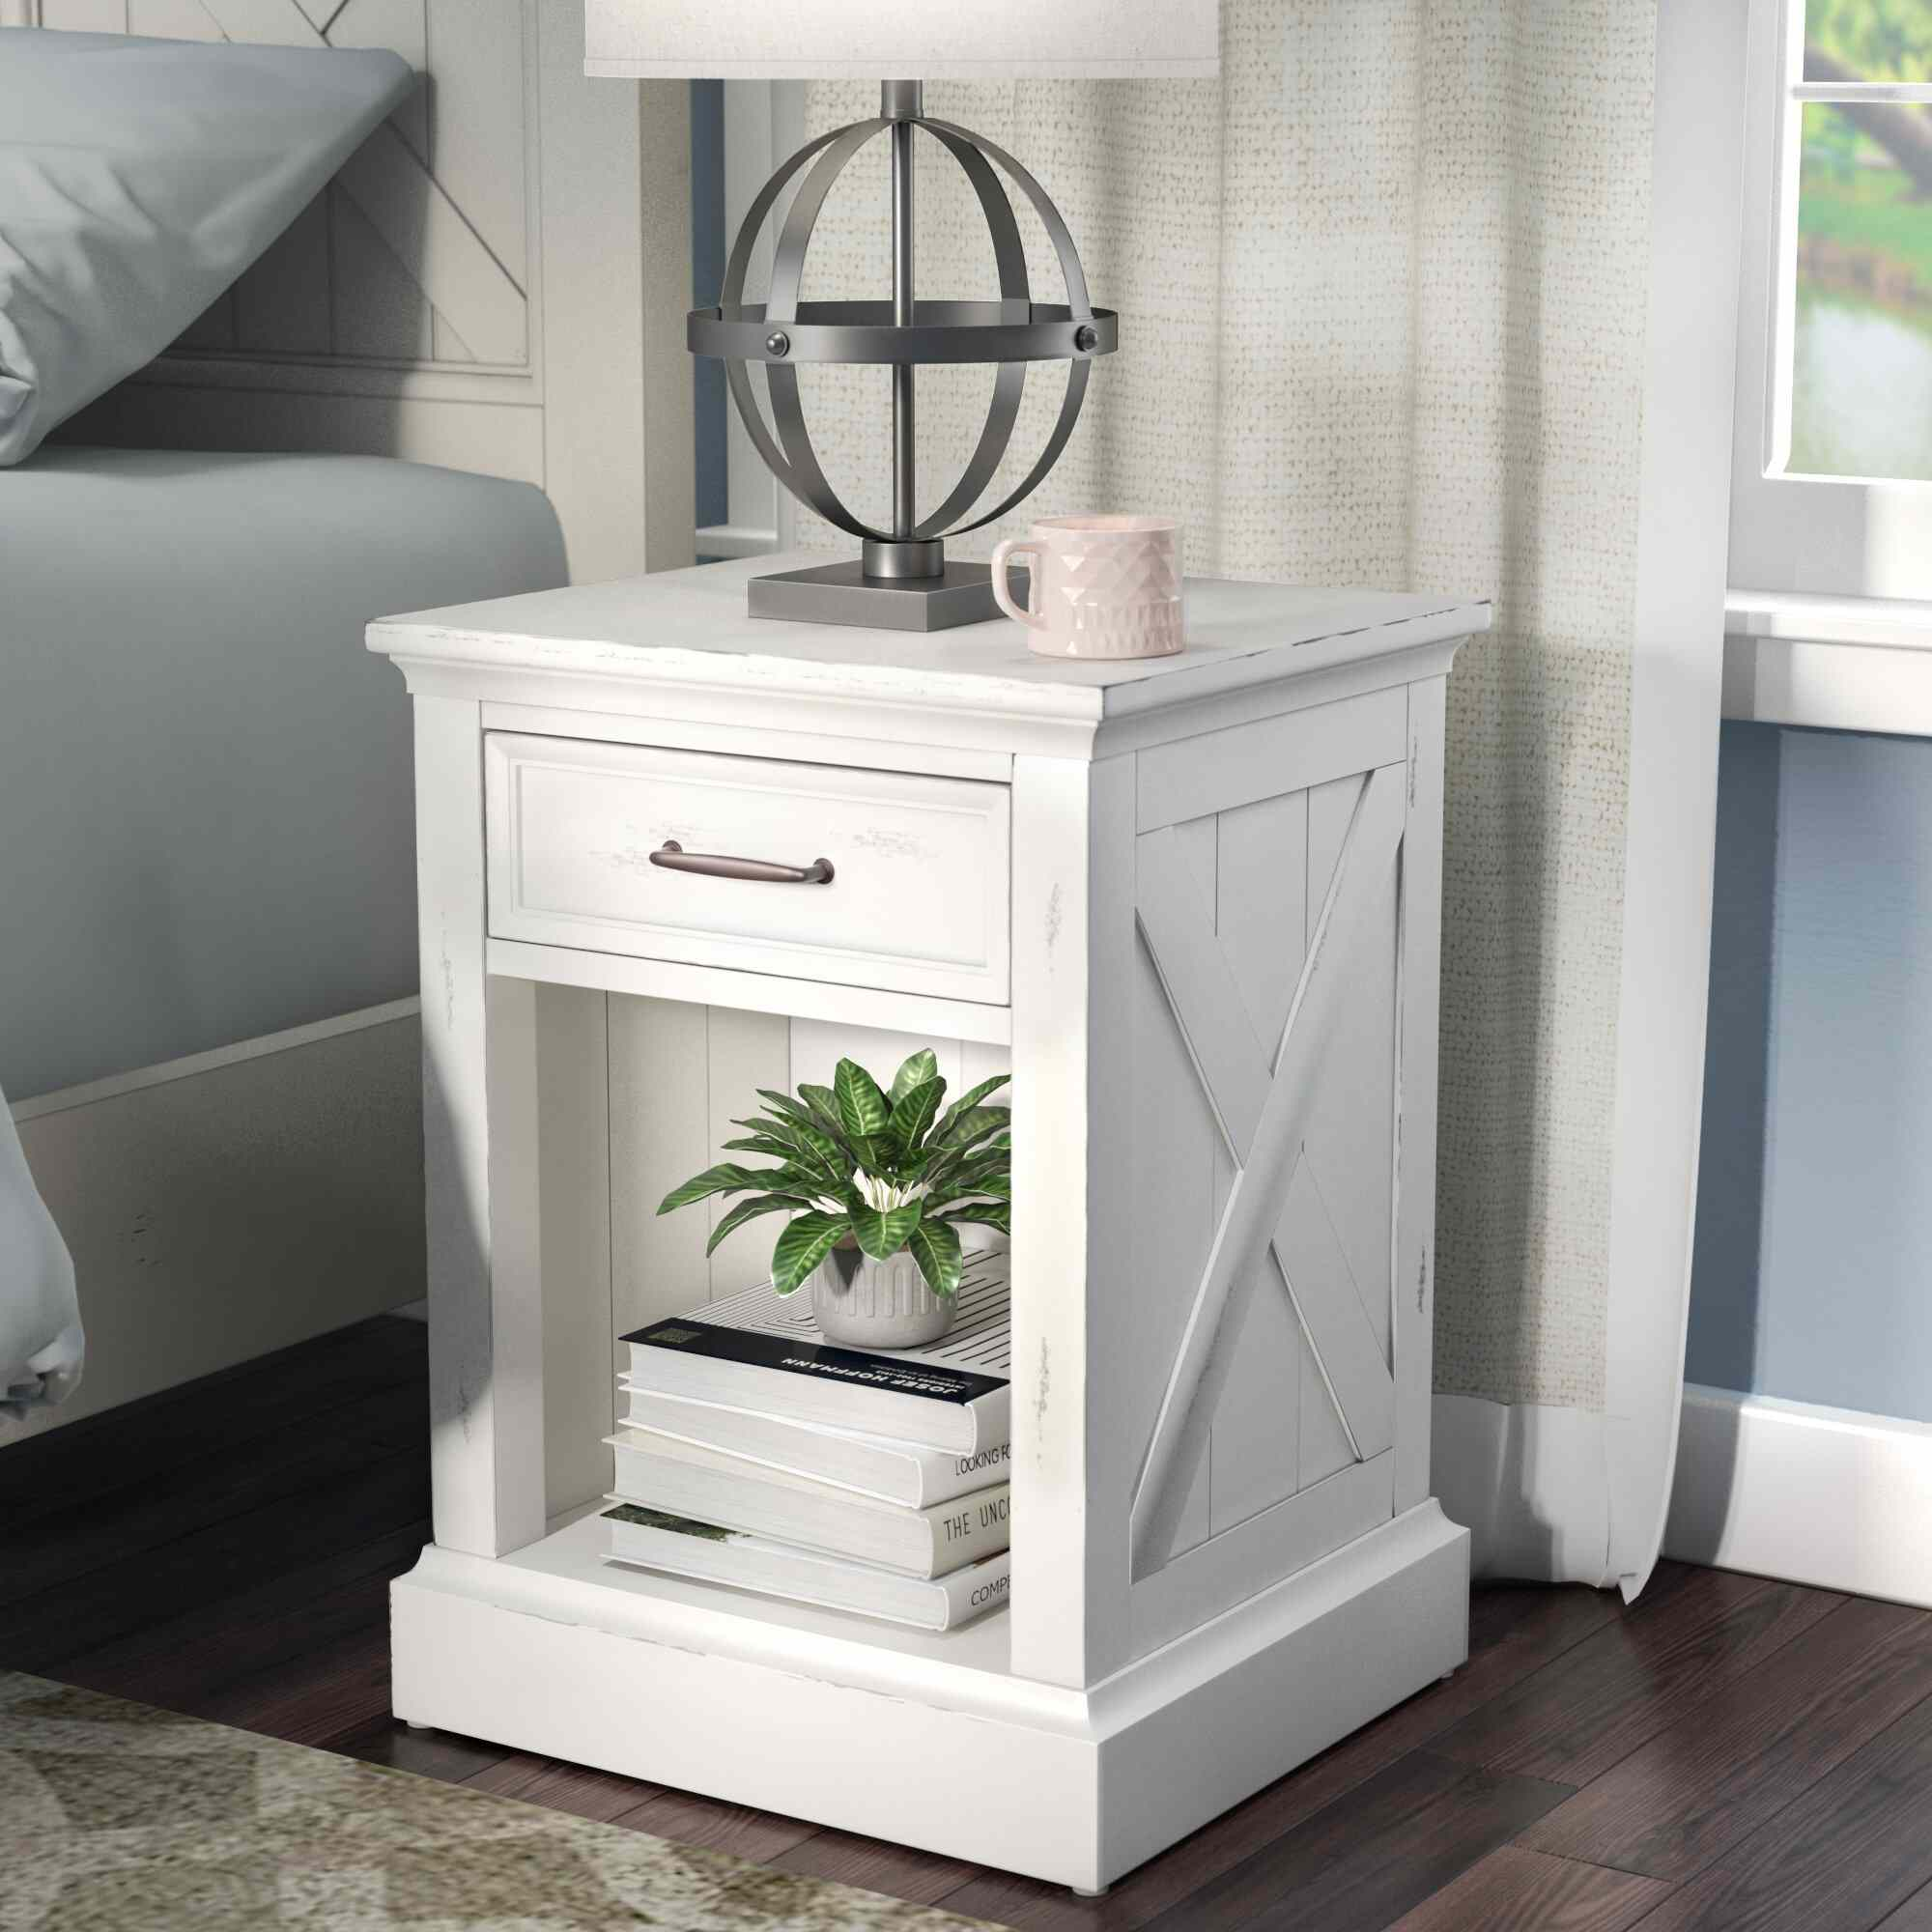 Sand & Stable Lana 1 - Drawer Nightstand in Off White